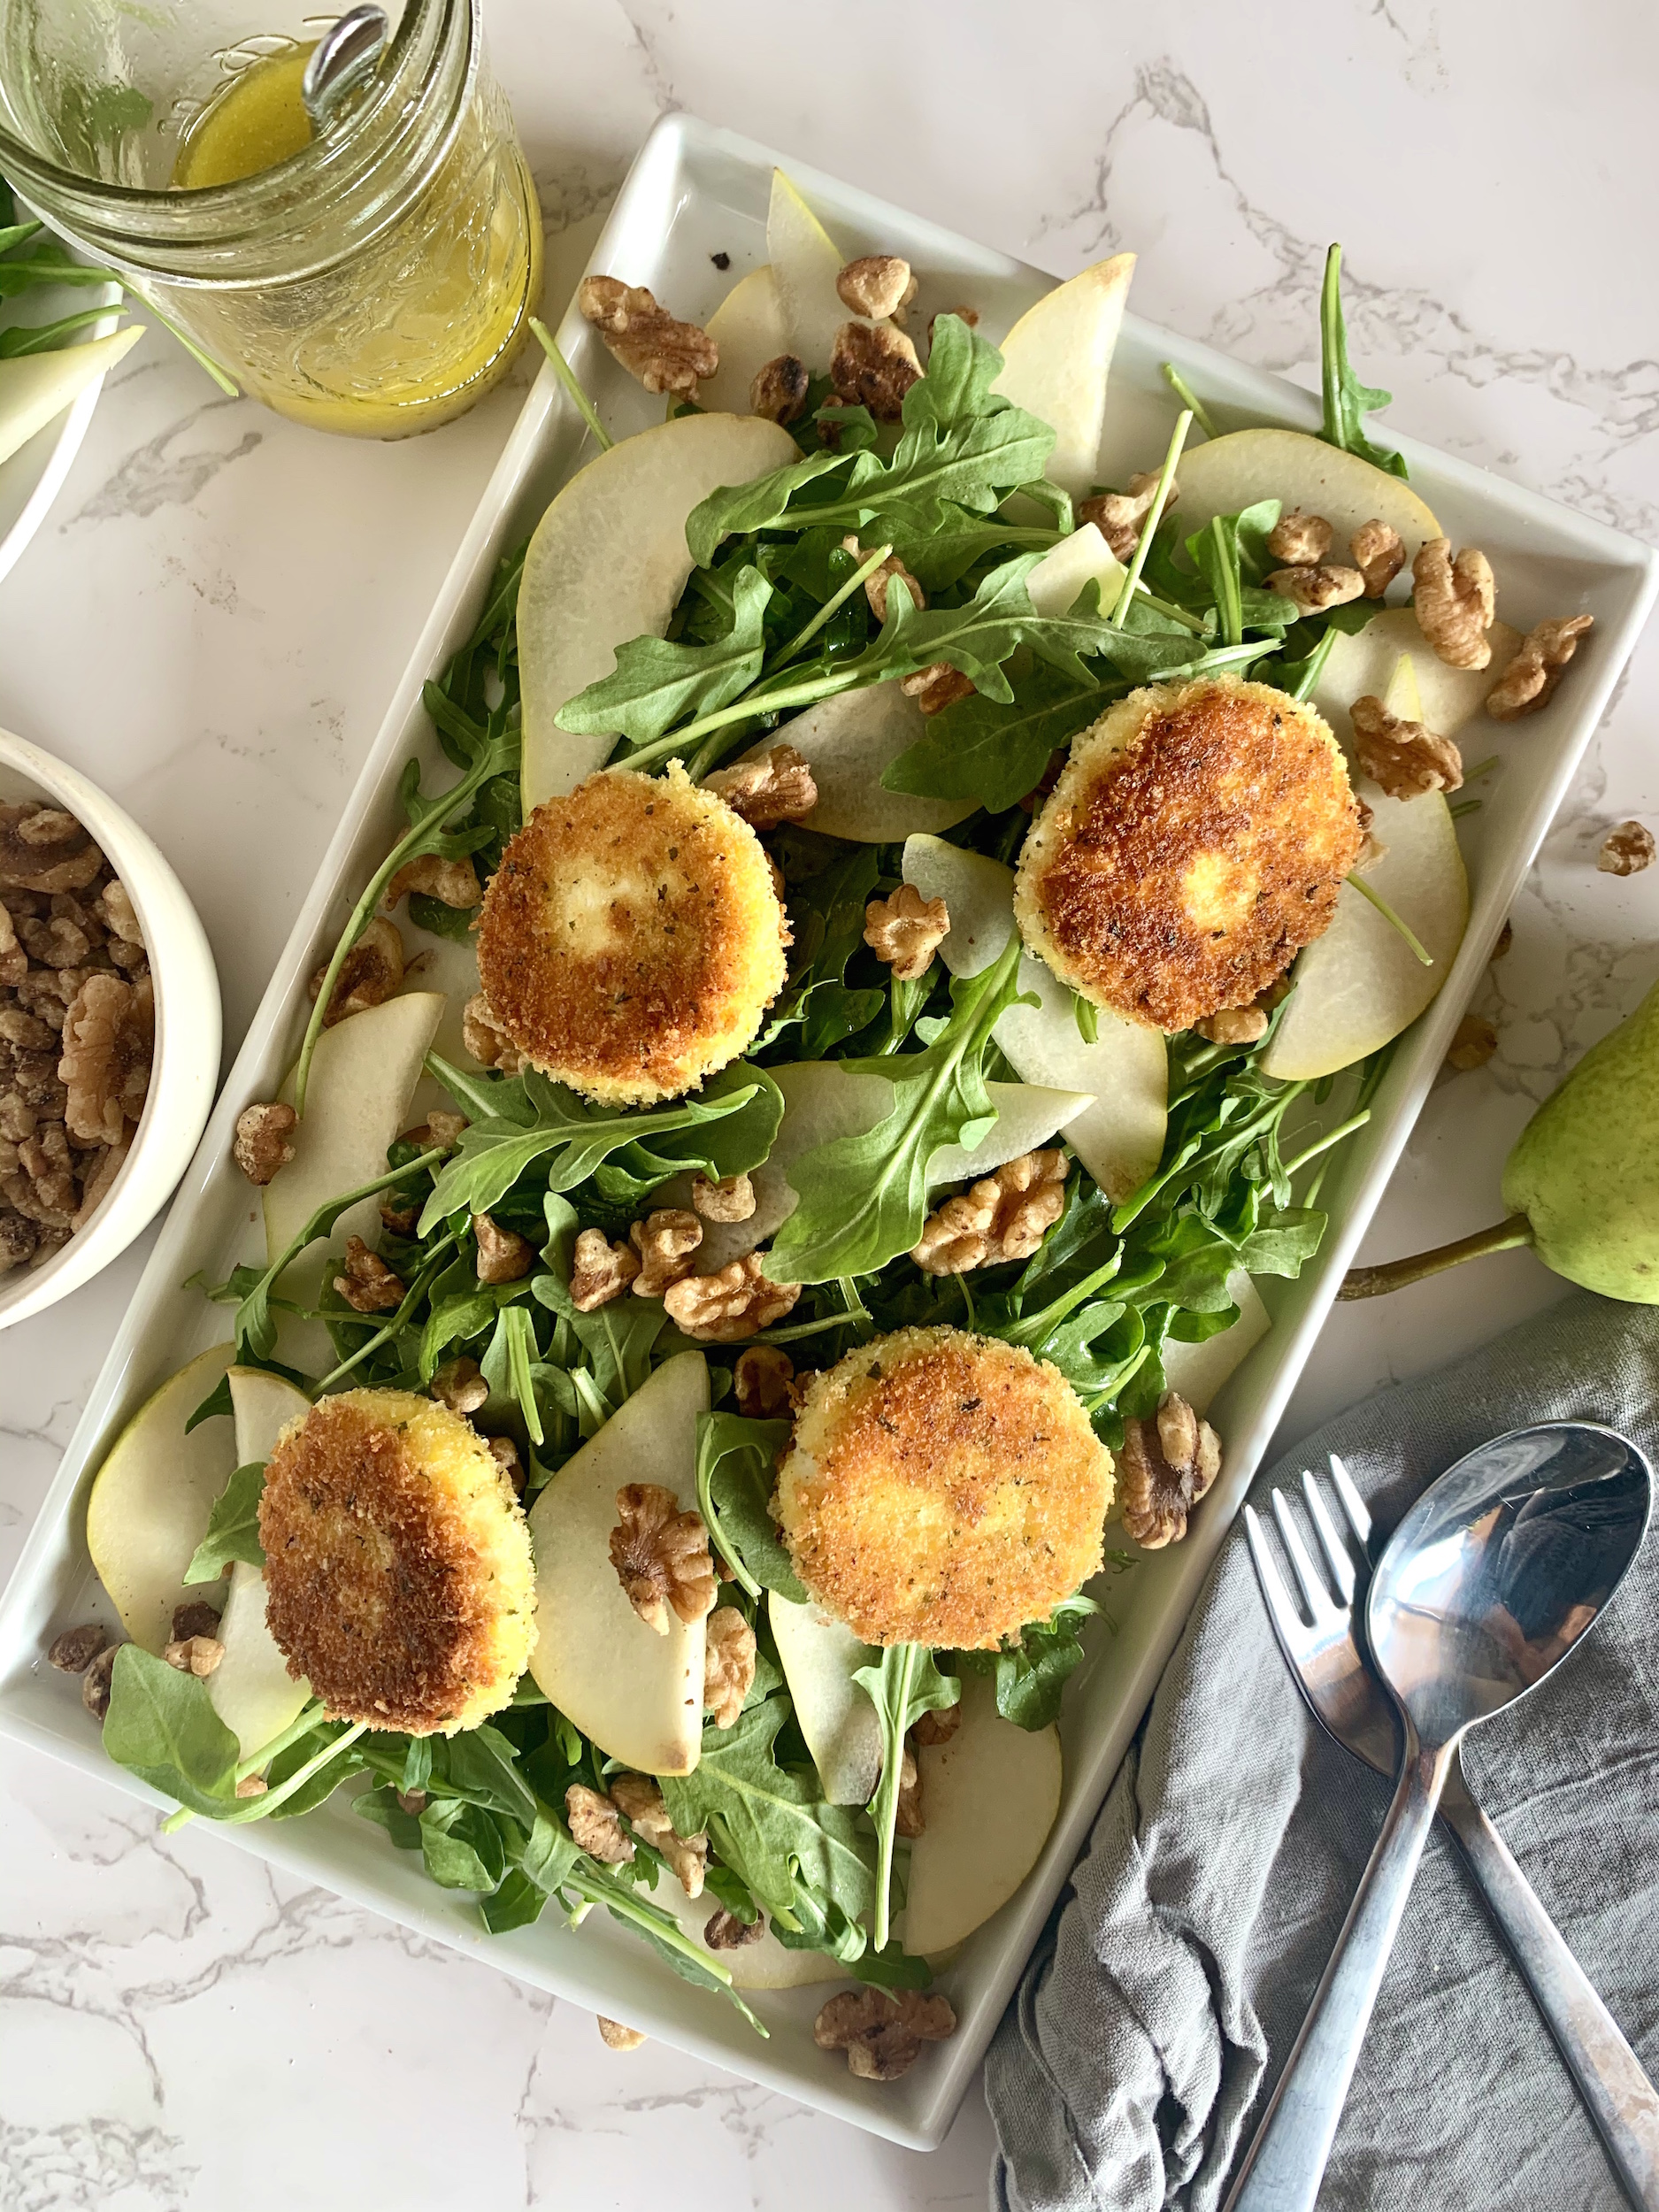 Rounds of fried goat cheese on a bed of arugula with walnuts and pears on a platter